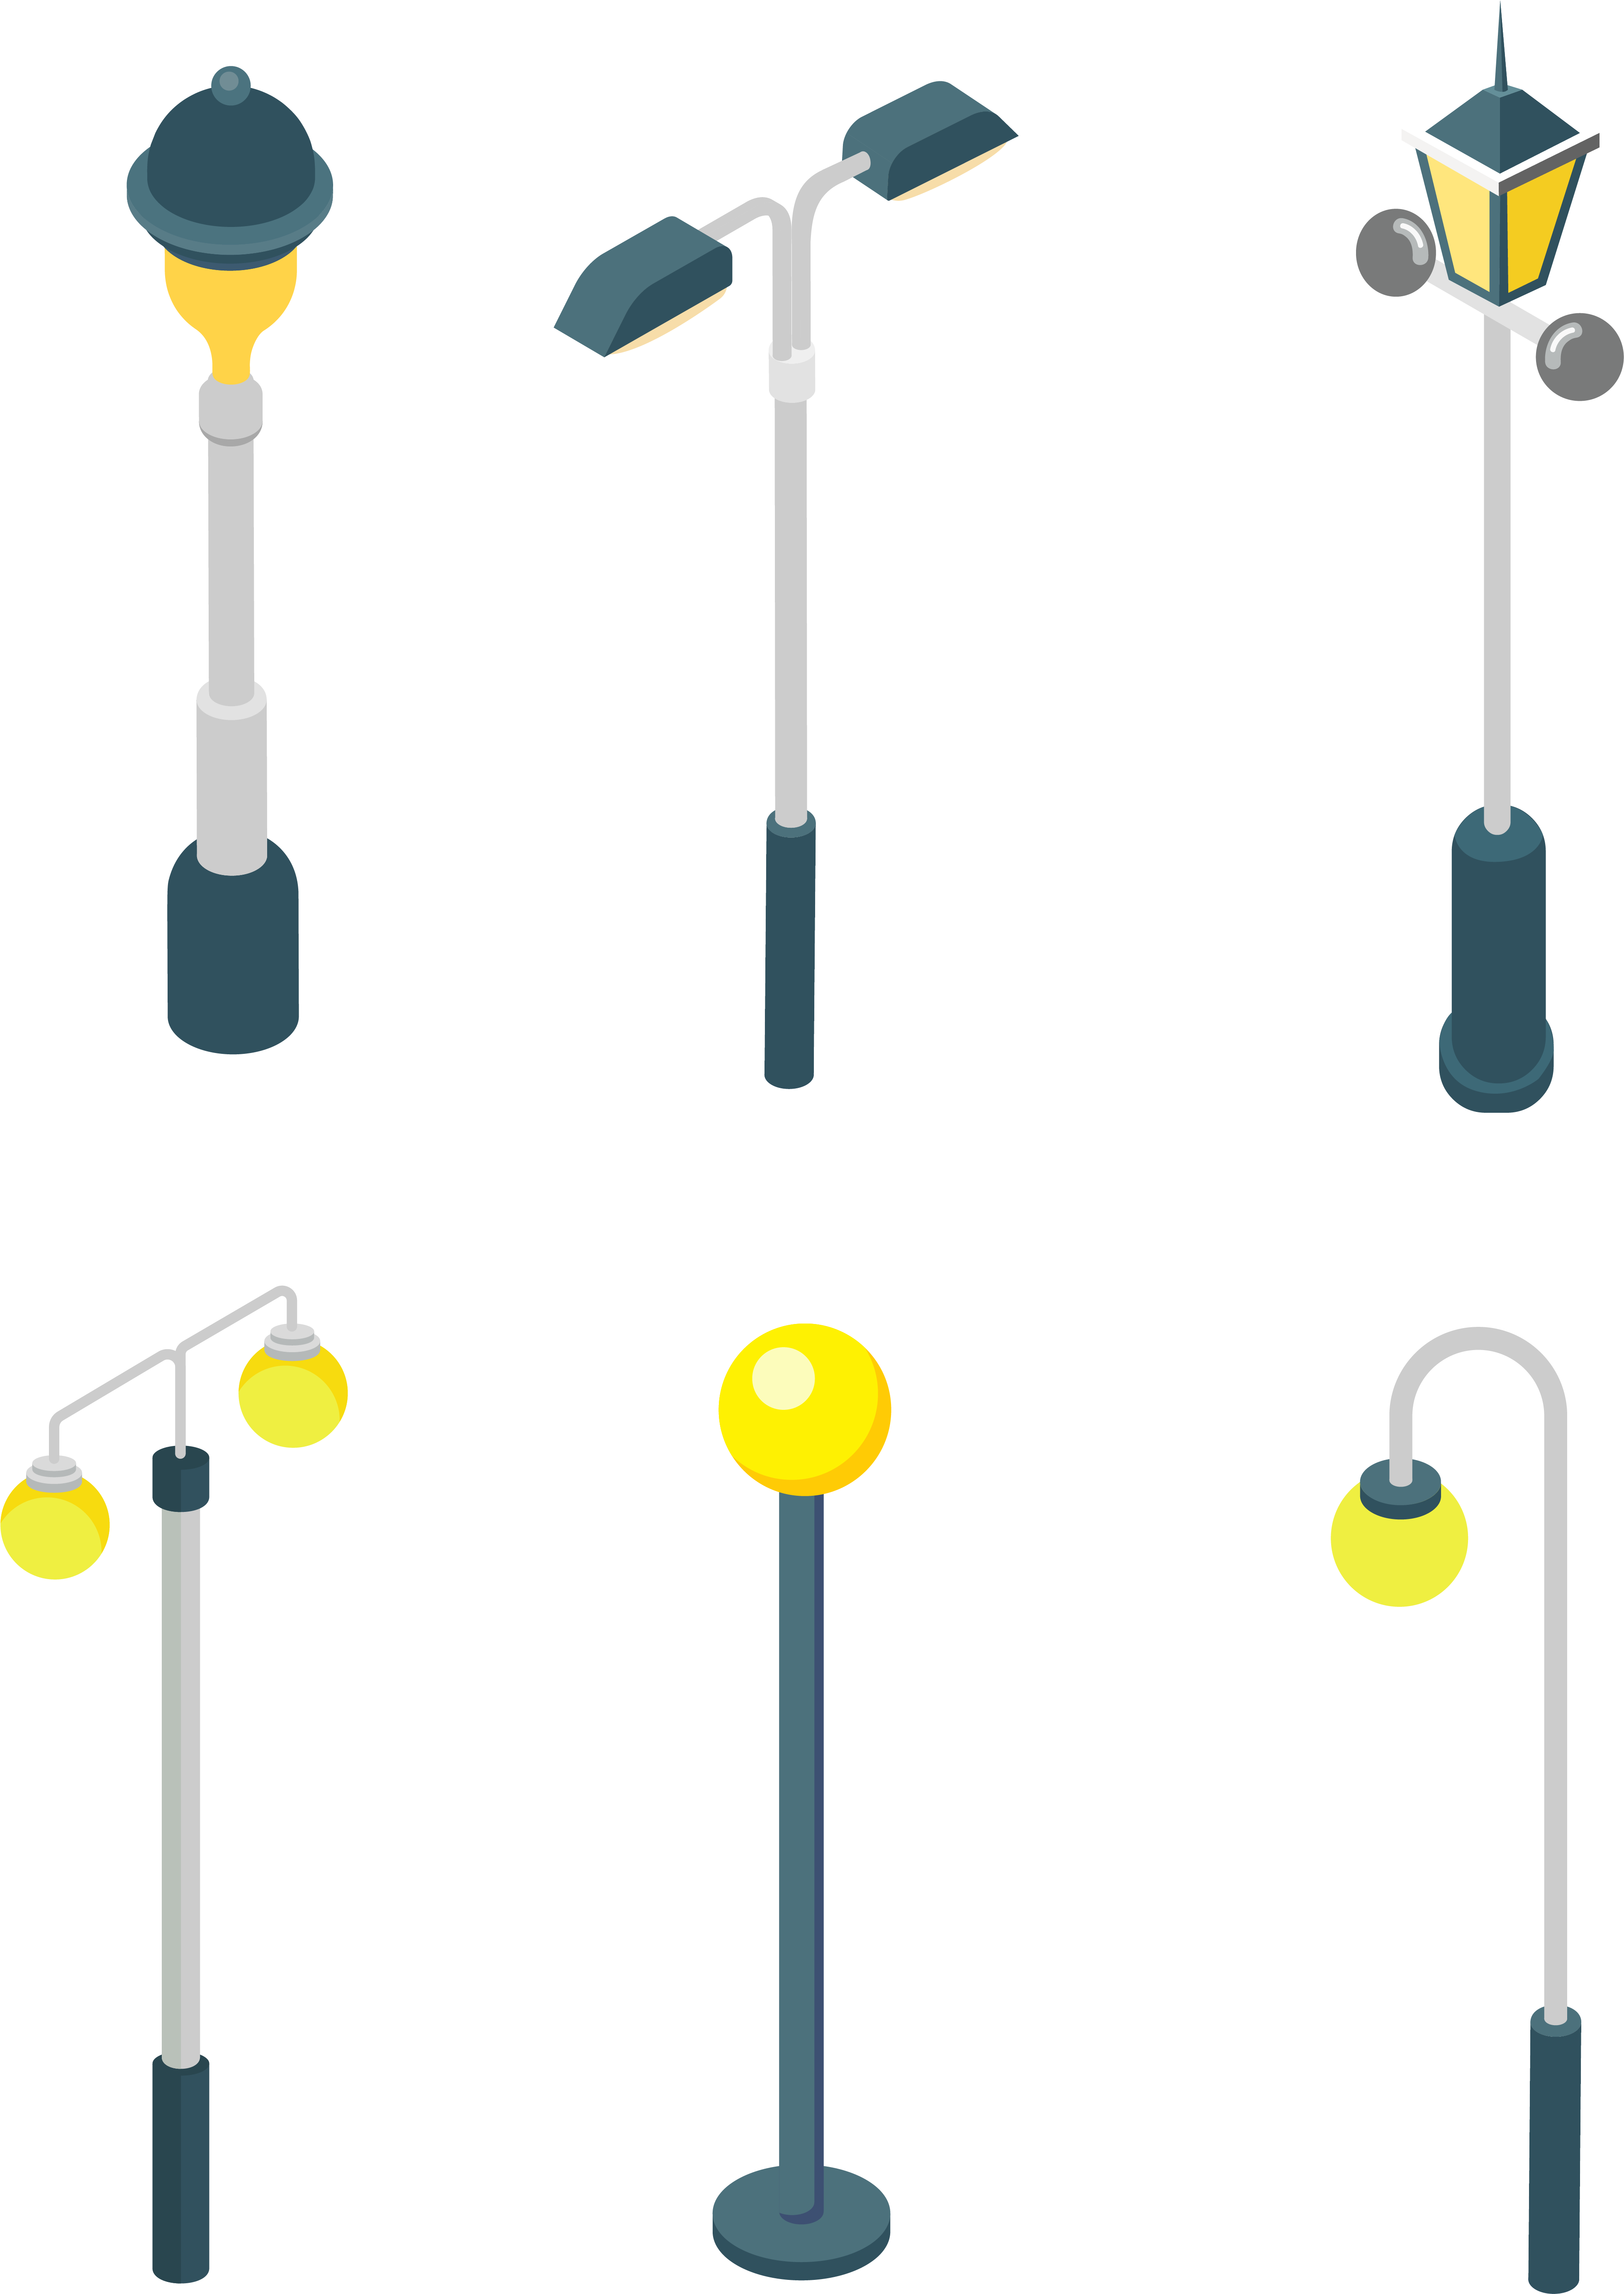 Street Light Bulb Sun Png And Vector Image - Street Light (4267x5705), Png Download